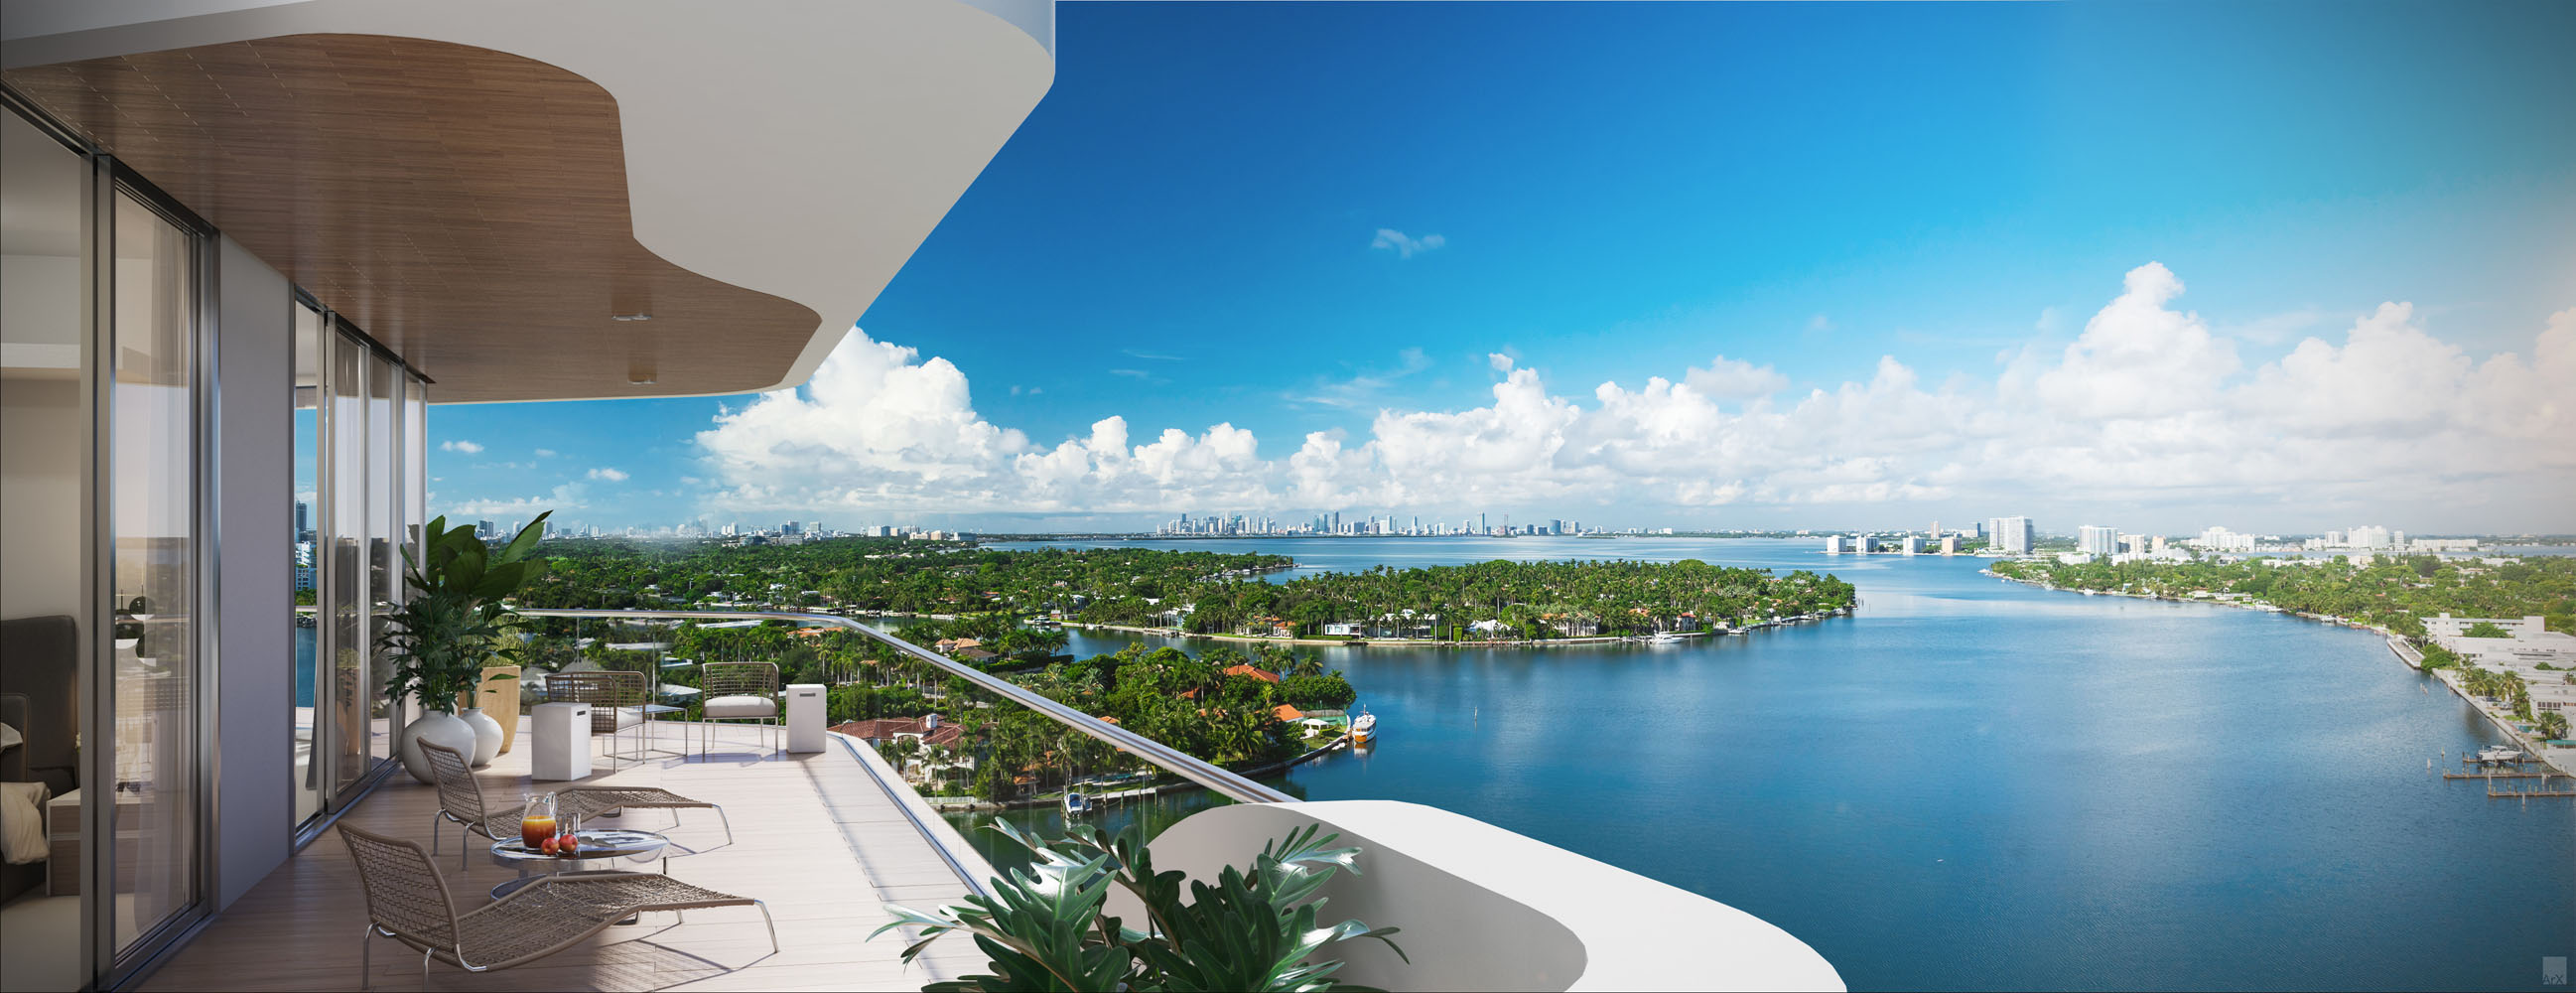 Balcony overlooking the bay during the day at Monaco Yacht Club luxury residences in Miami Beach.